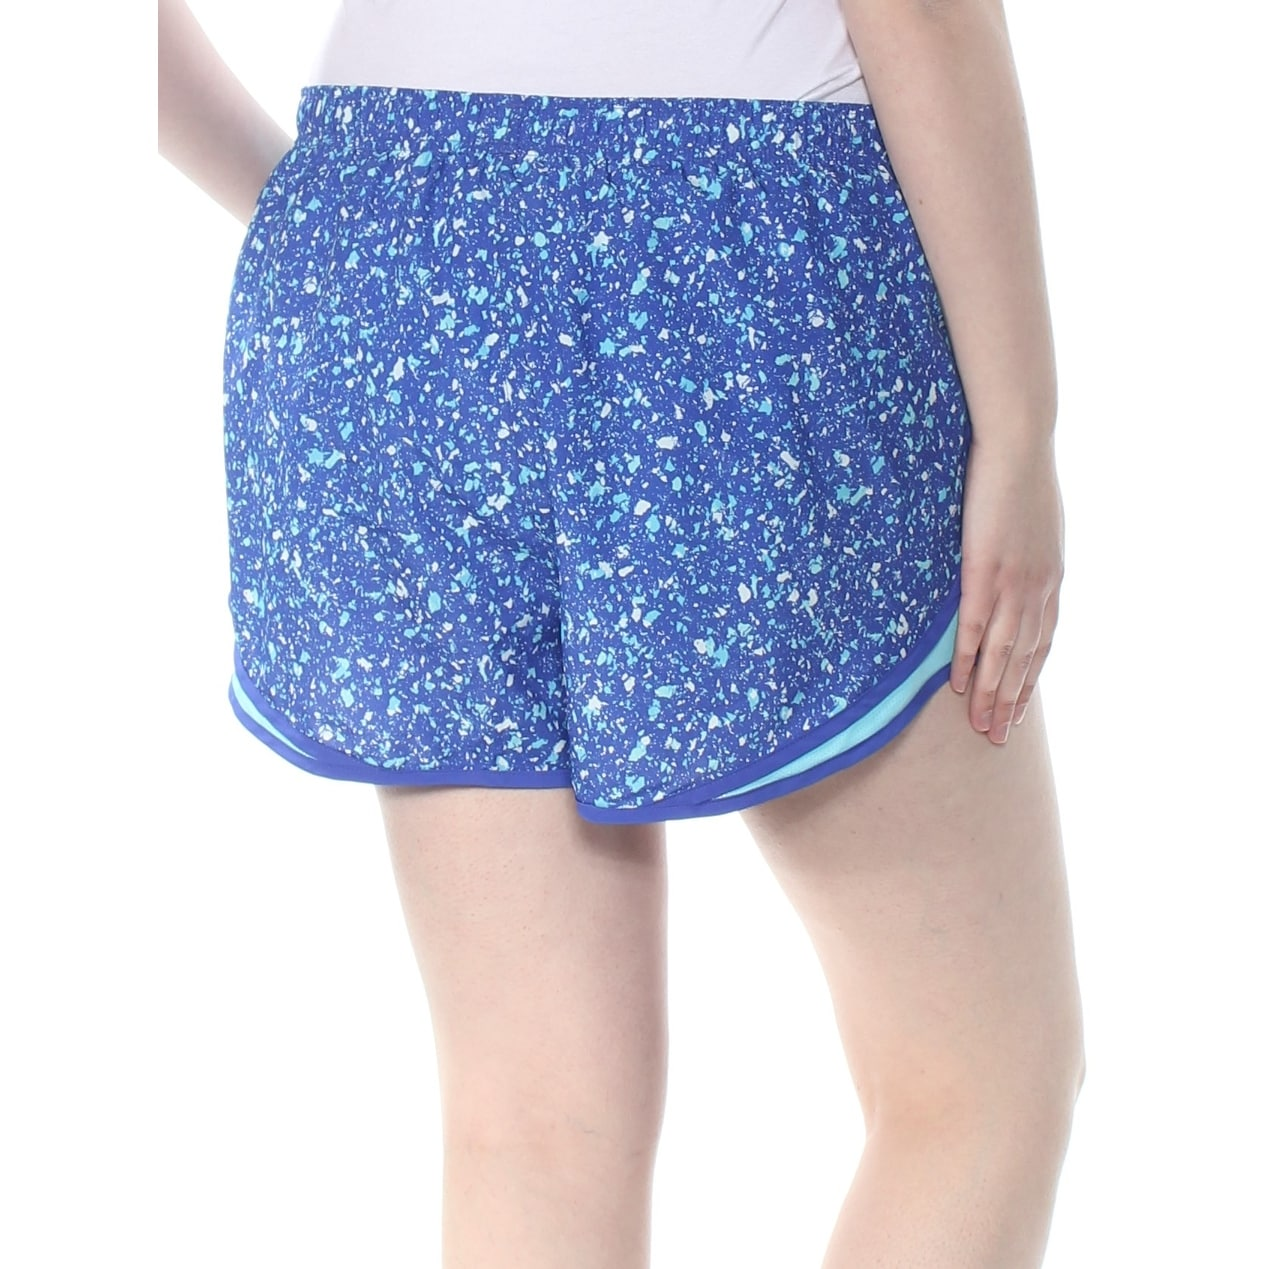 da40fe024d2b0 Shop NIKE Womens Blue Speckle Active Wear Short Plus Size: 1X - On Sale -  Free Shipping Today - Overstock - 28259046